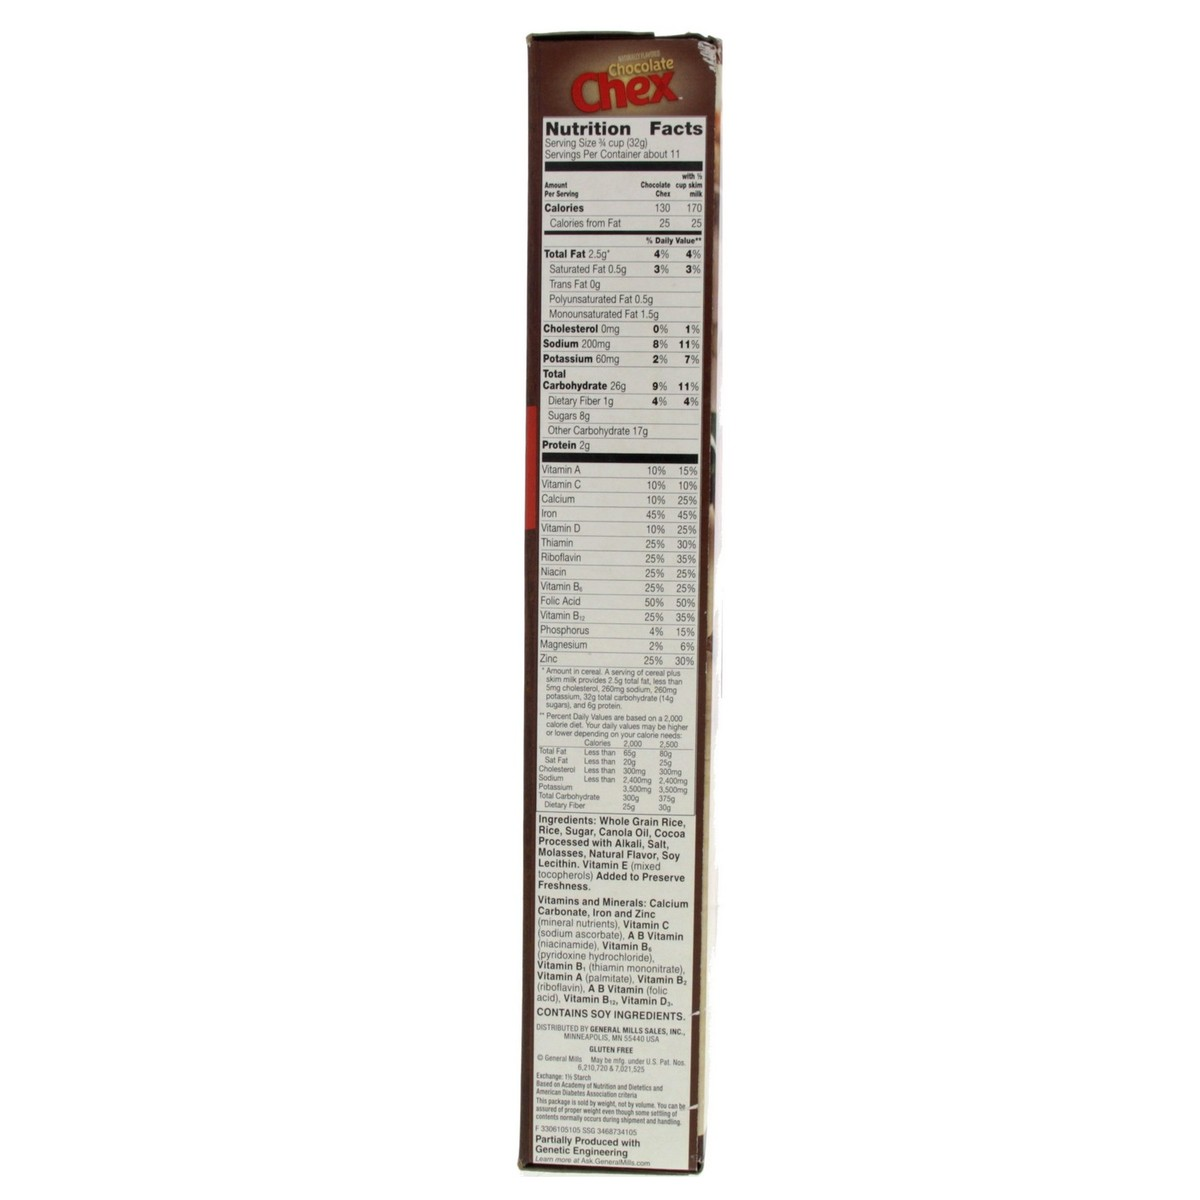 Chocolate Chex Rice Cereal 362g